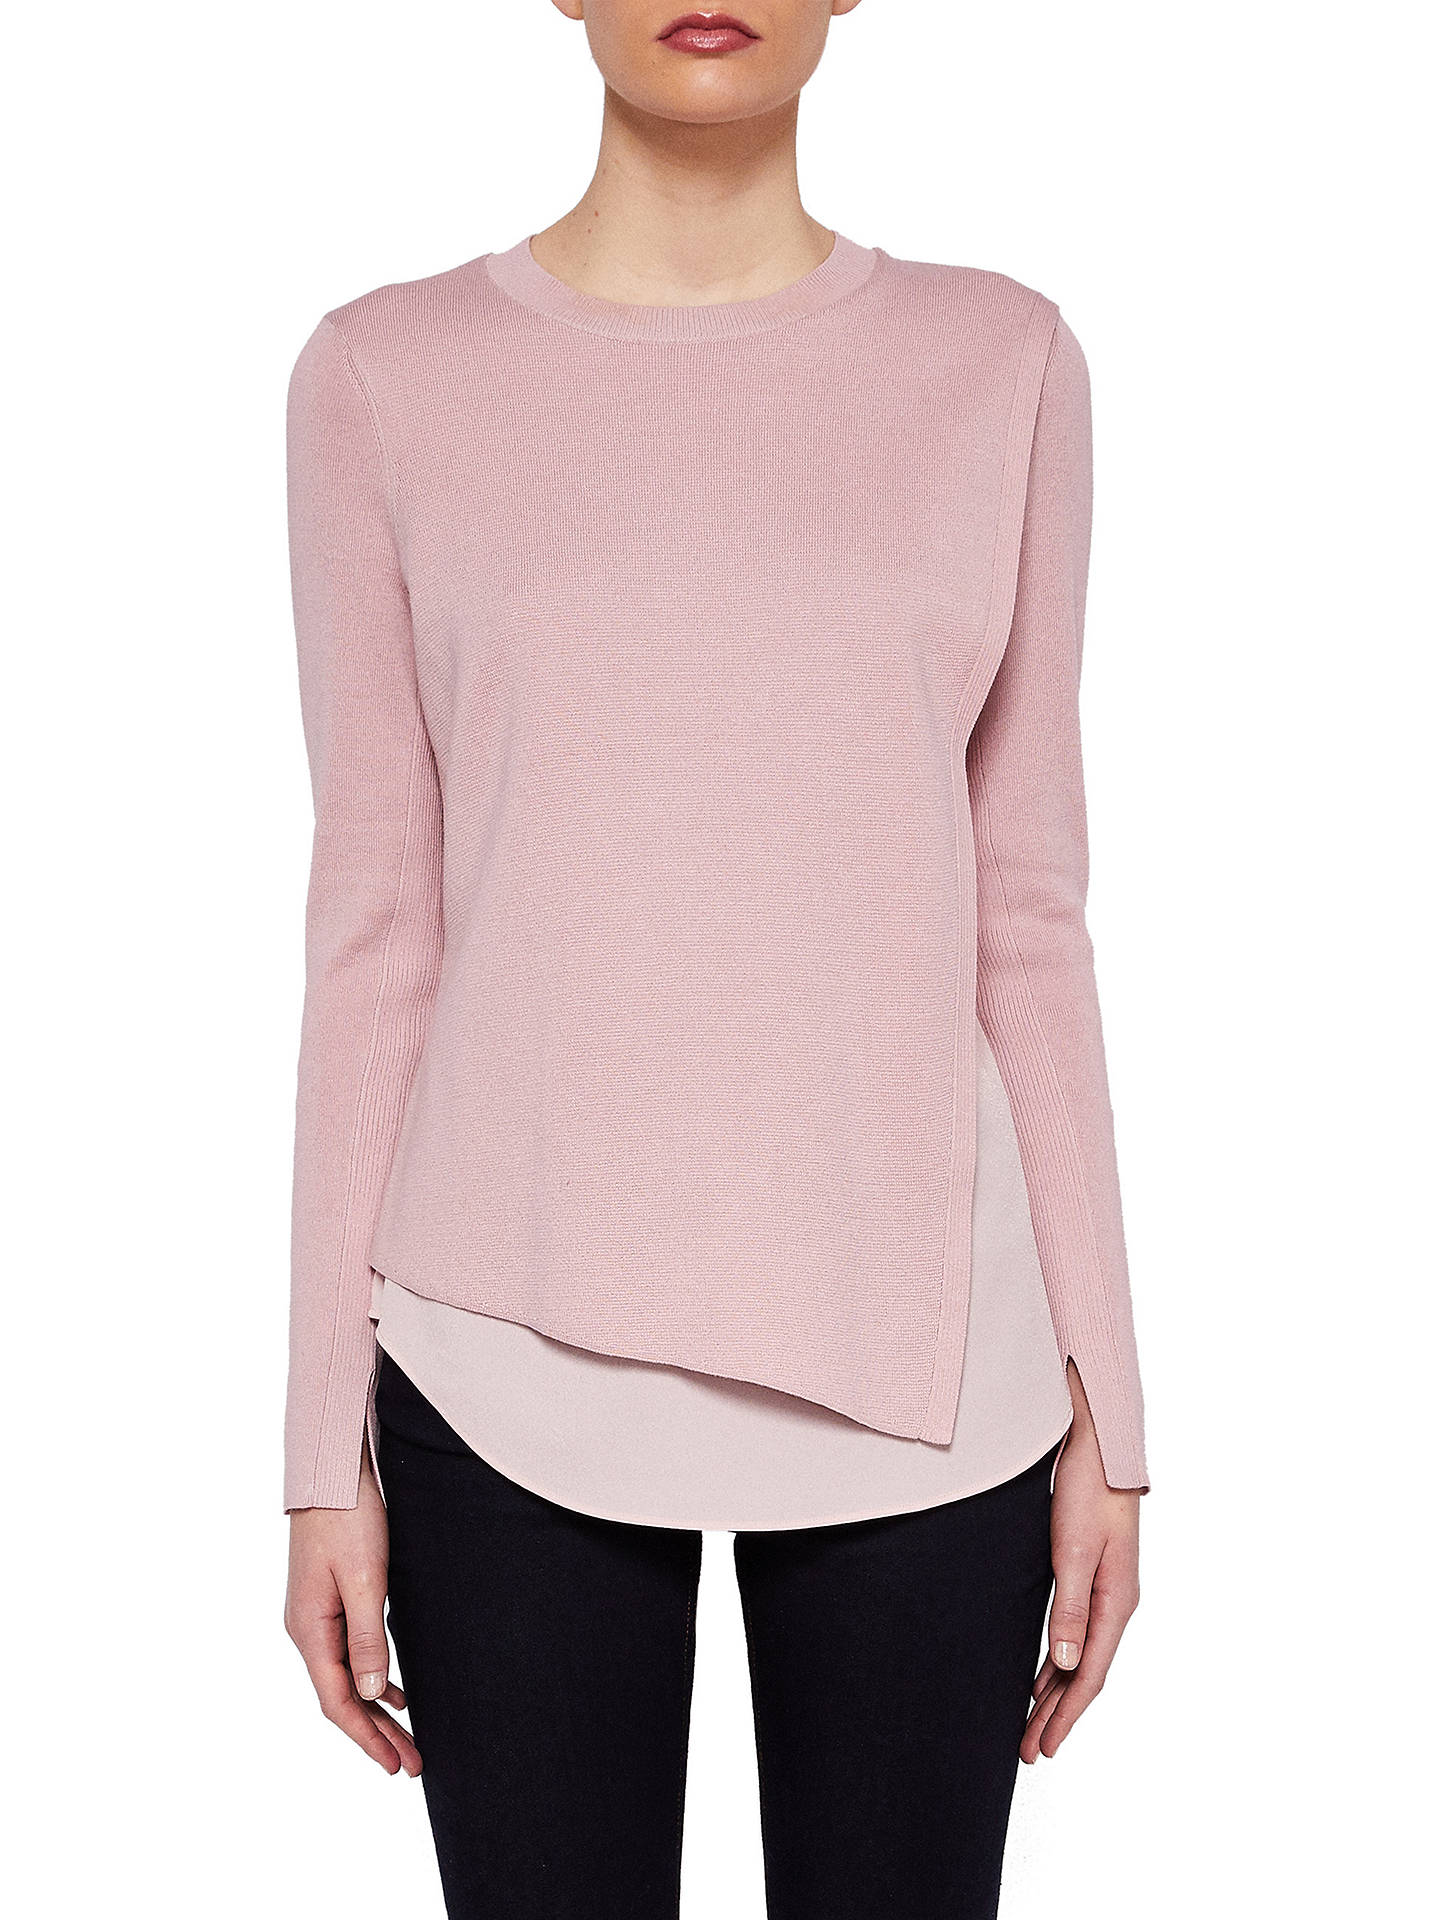 490dbd671 Ted Baker Knitted Overlay Jumper at John Lewis   Partners